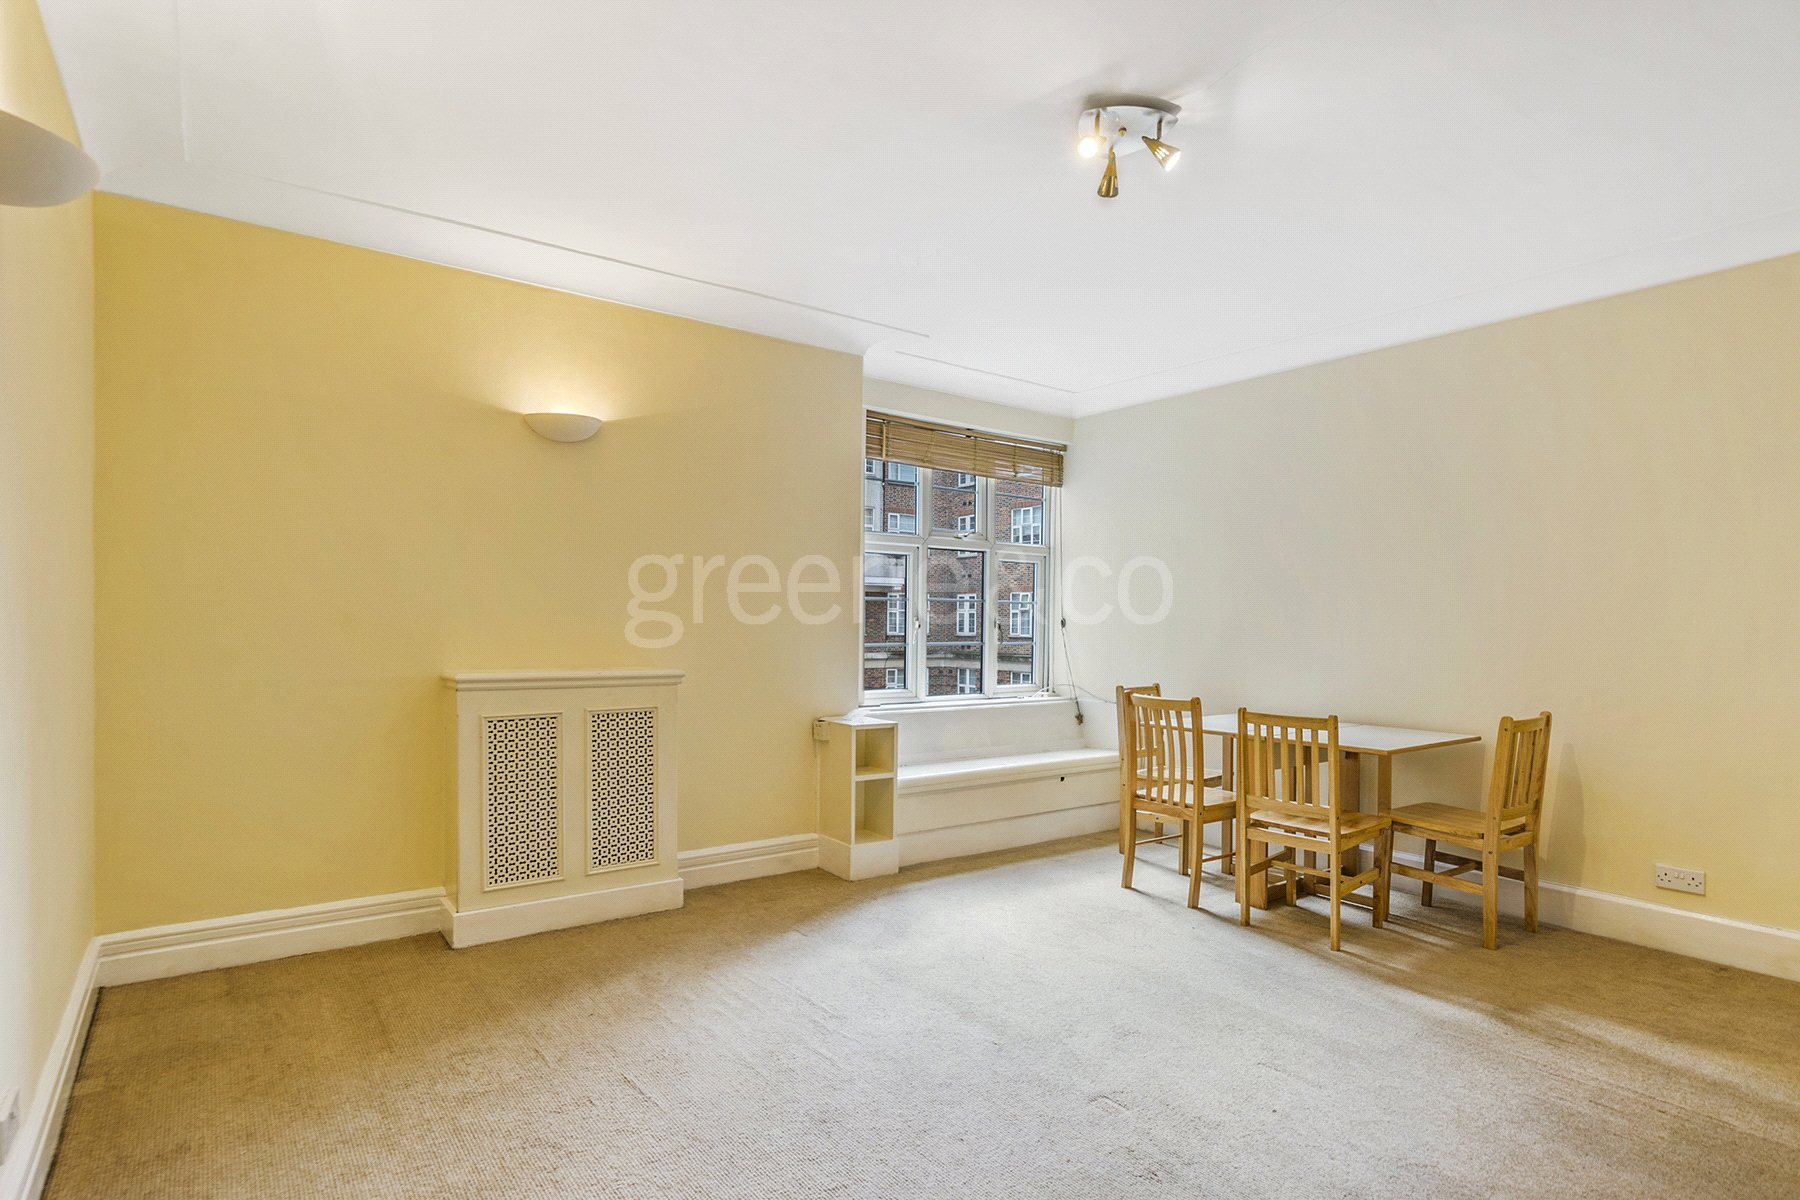 House for sale in College Crescent, Belsize Park, London, NW3